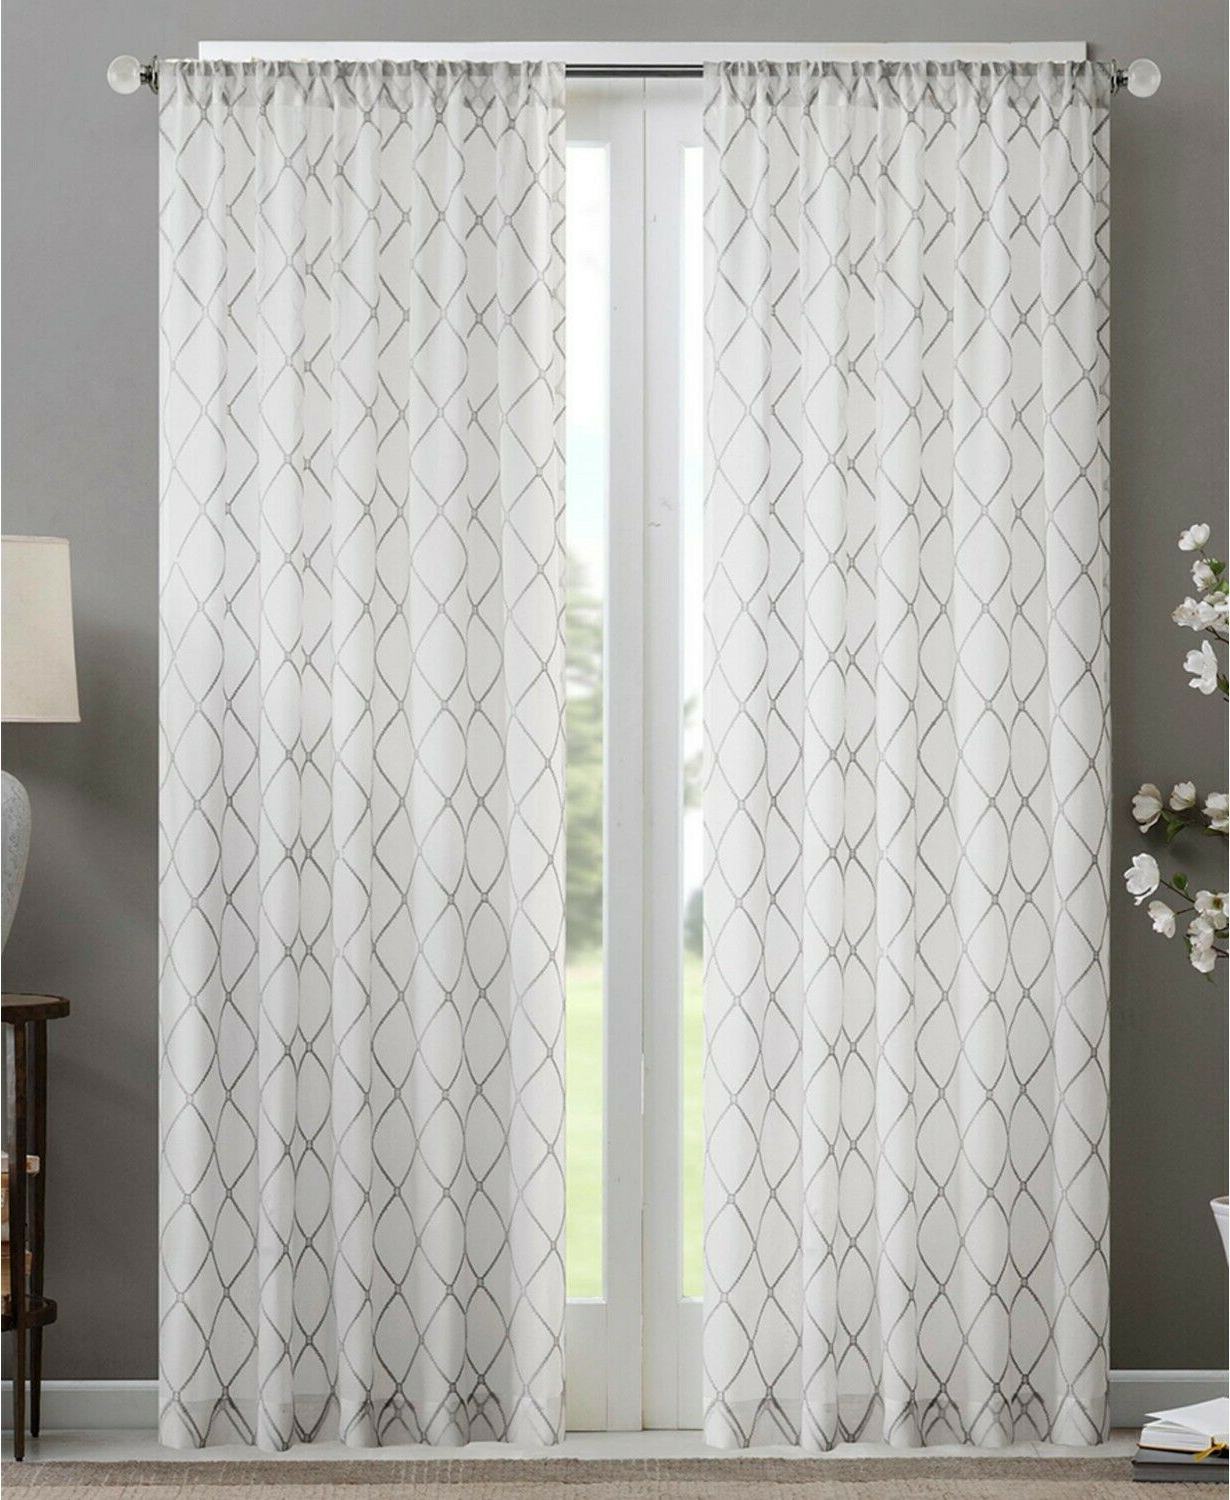 "Laya Fretwork Burnout Sheer Curtain Panels Regarding Recent Madison Park Irina Sheer Rod Pocket Curtain Panel 50"" X 95"" White Gray (View 17 of 20)"